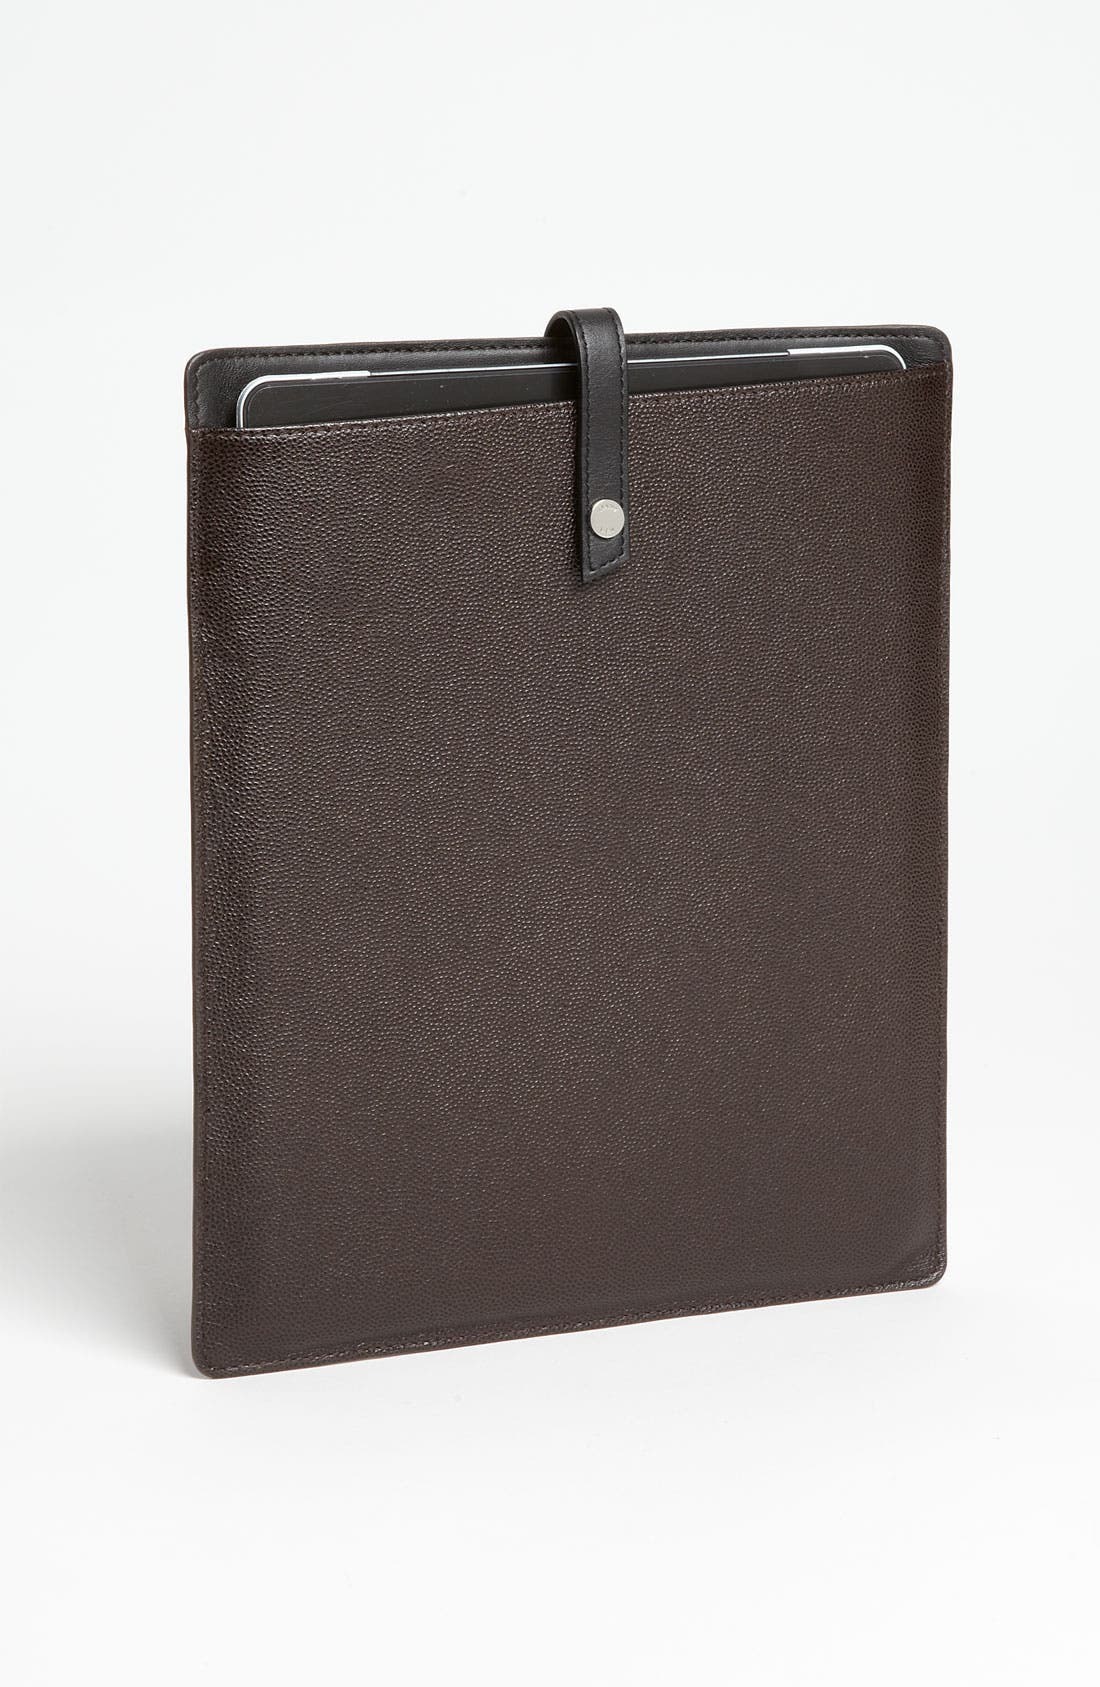 Alternate Image 1 Selected - WANT Les Essentiels de la Vie 'Capital' iPad 2 Leather Sleeve